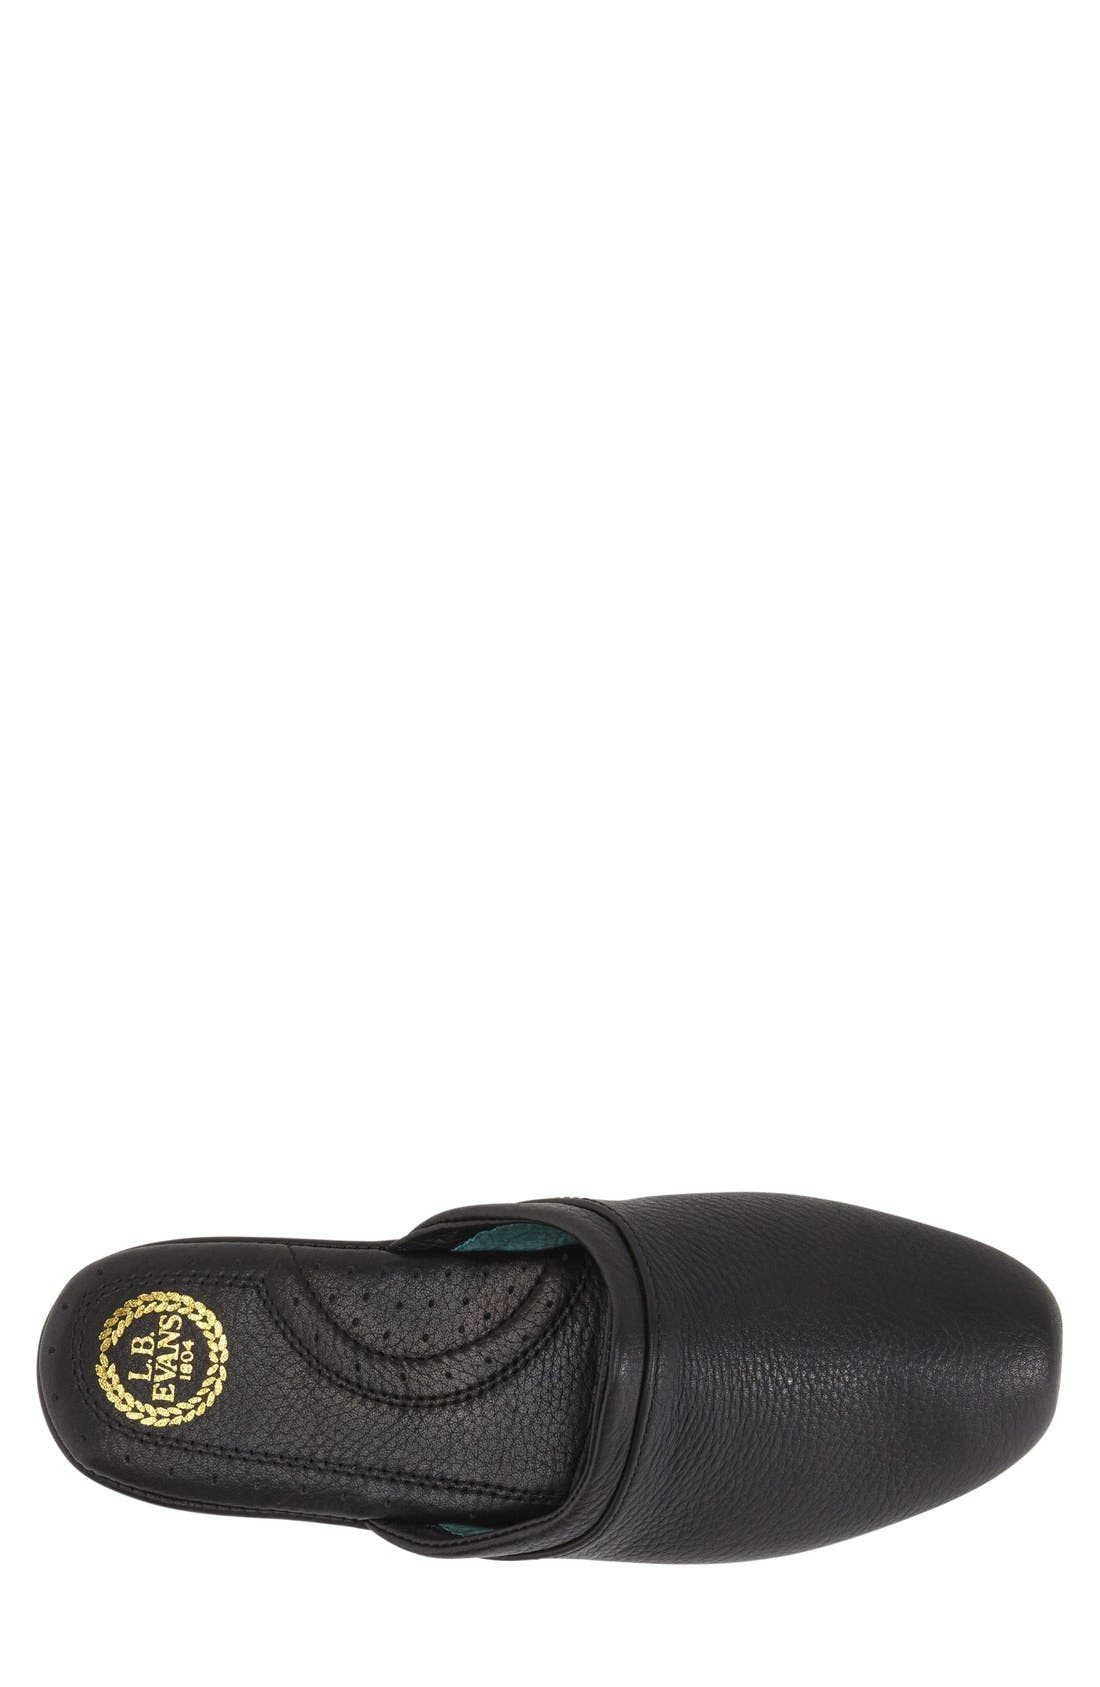 'Aristocrat' Scuff,                             Alternate thumbnail 6, color,                             Black